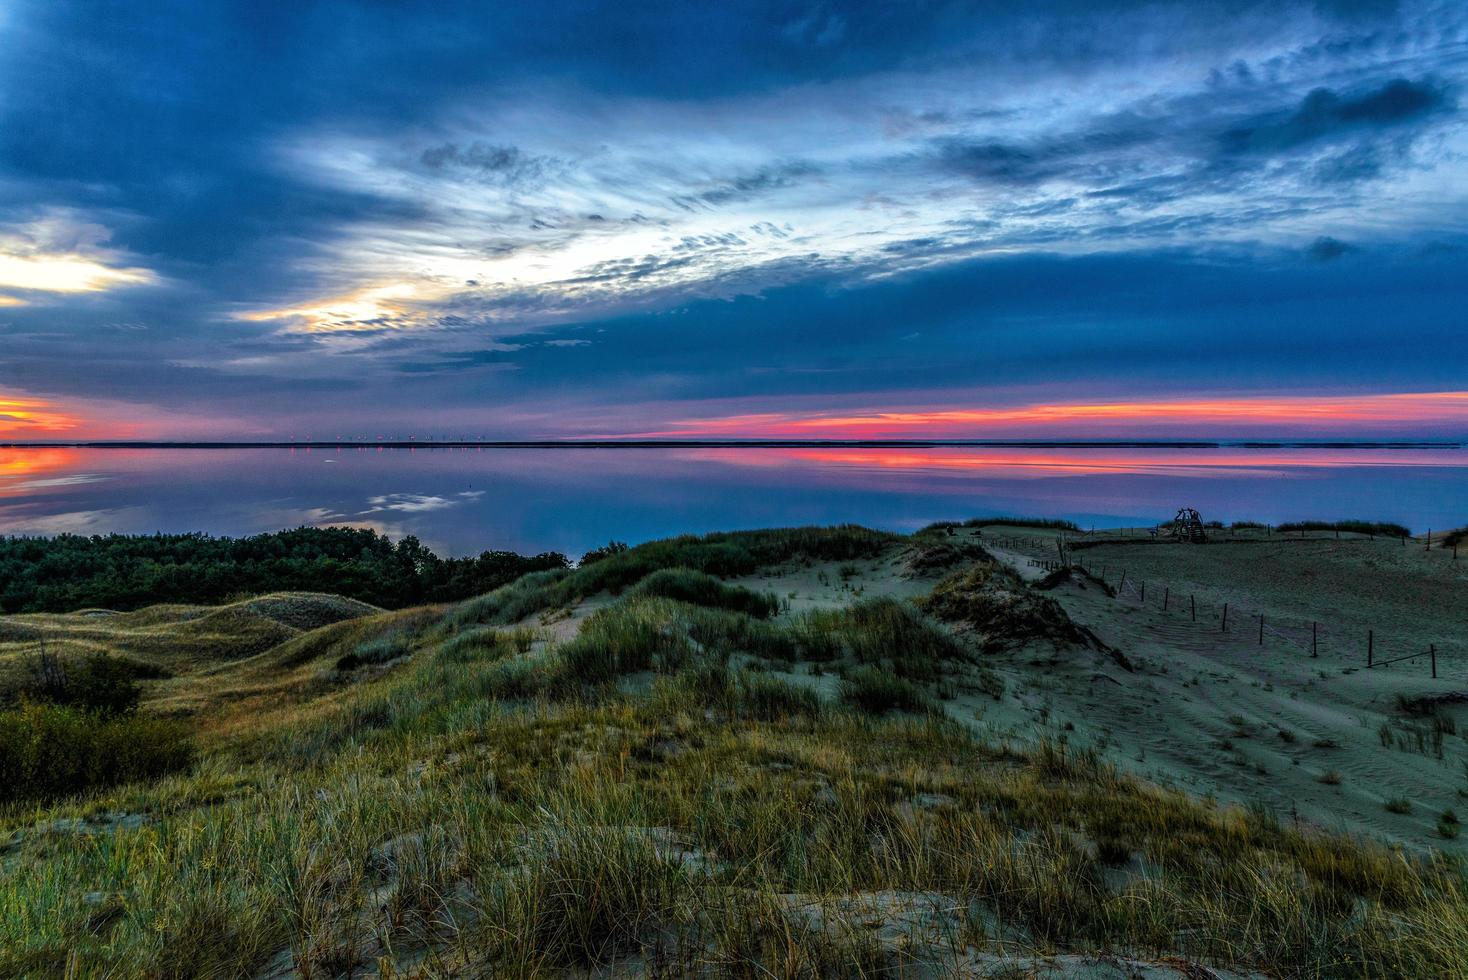 Body of water and dunes during sunset photo